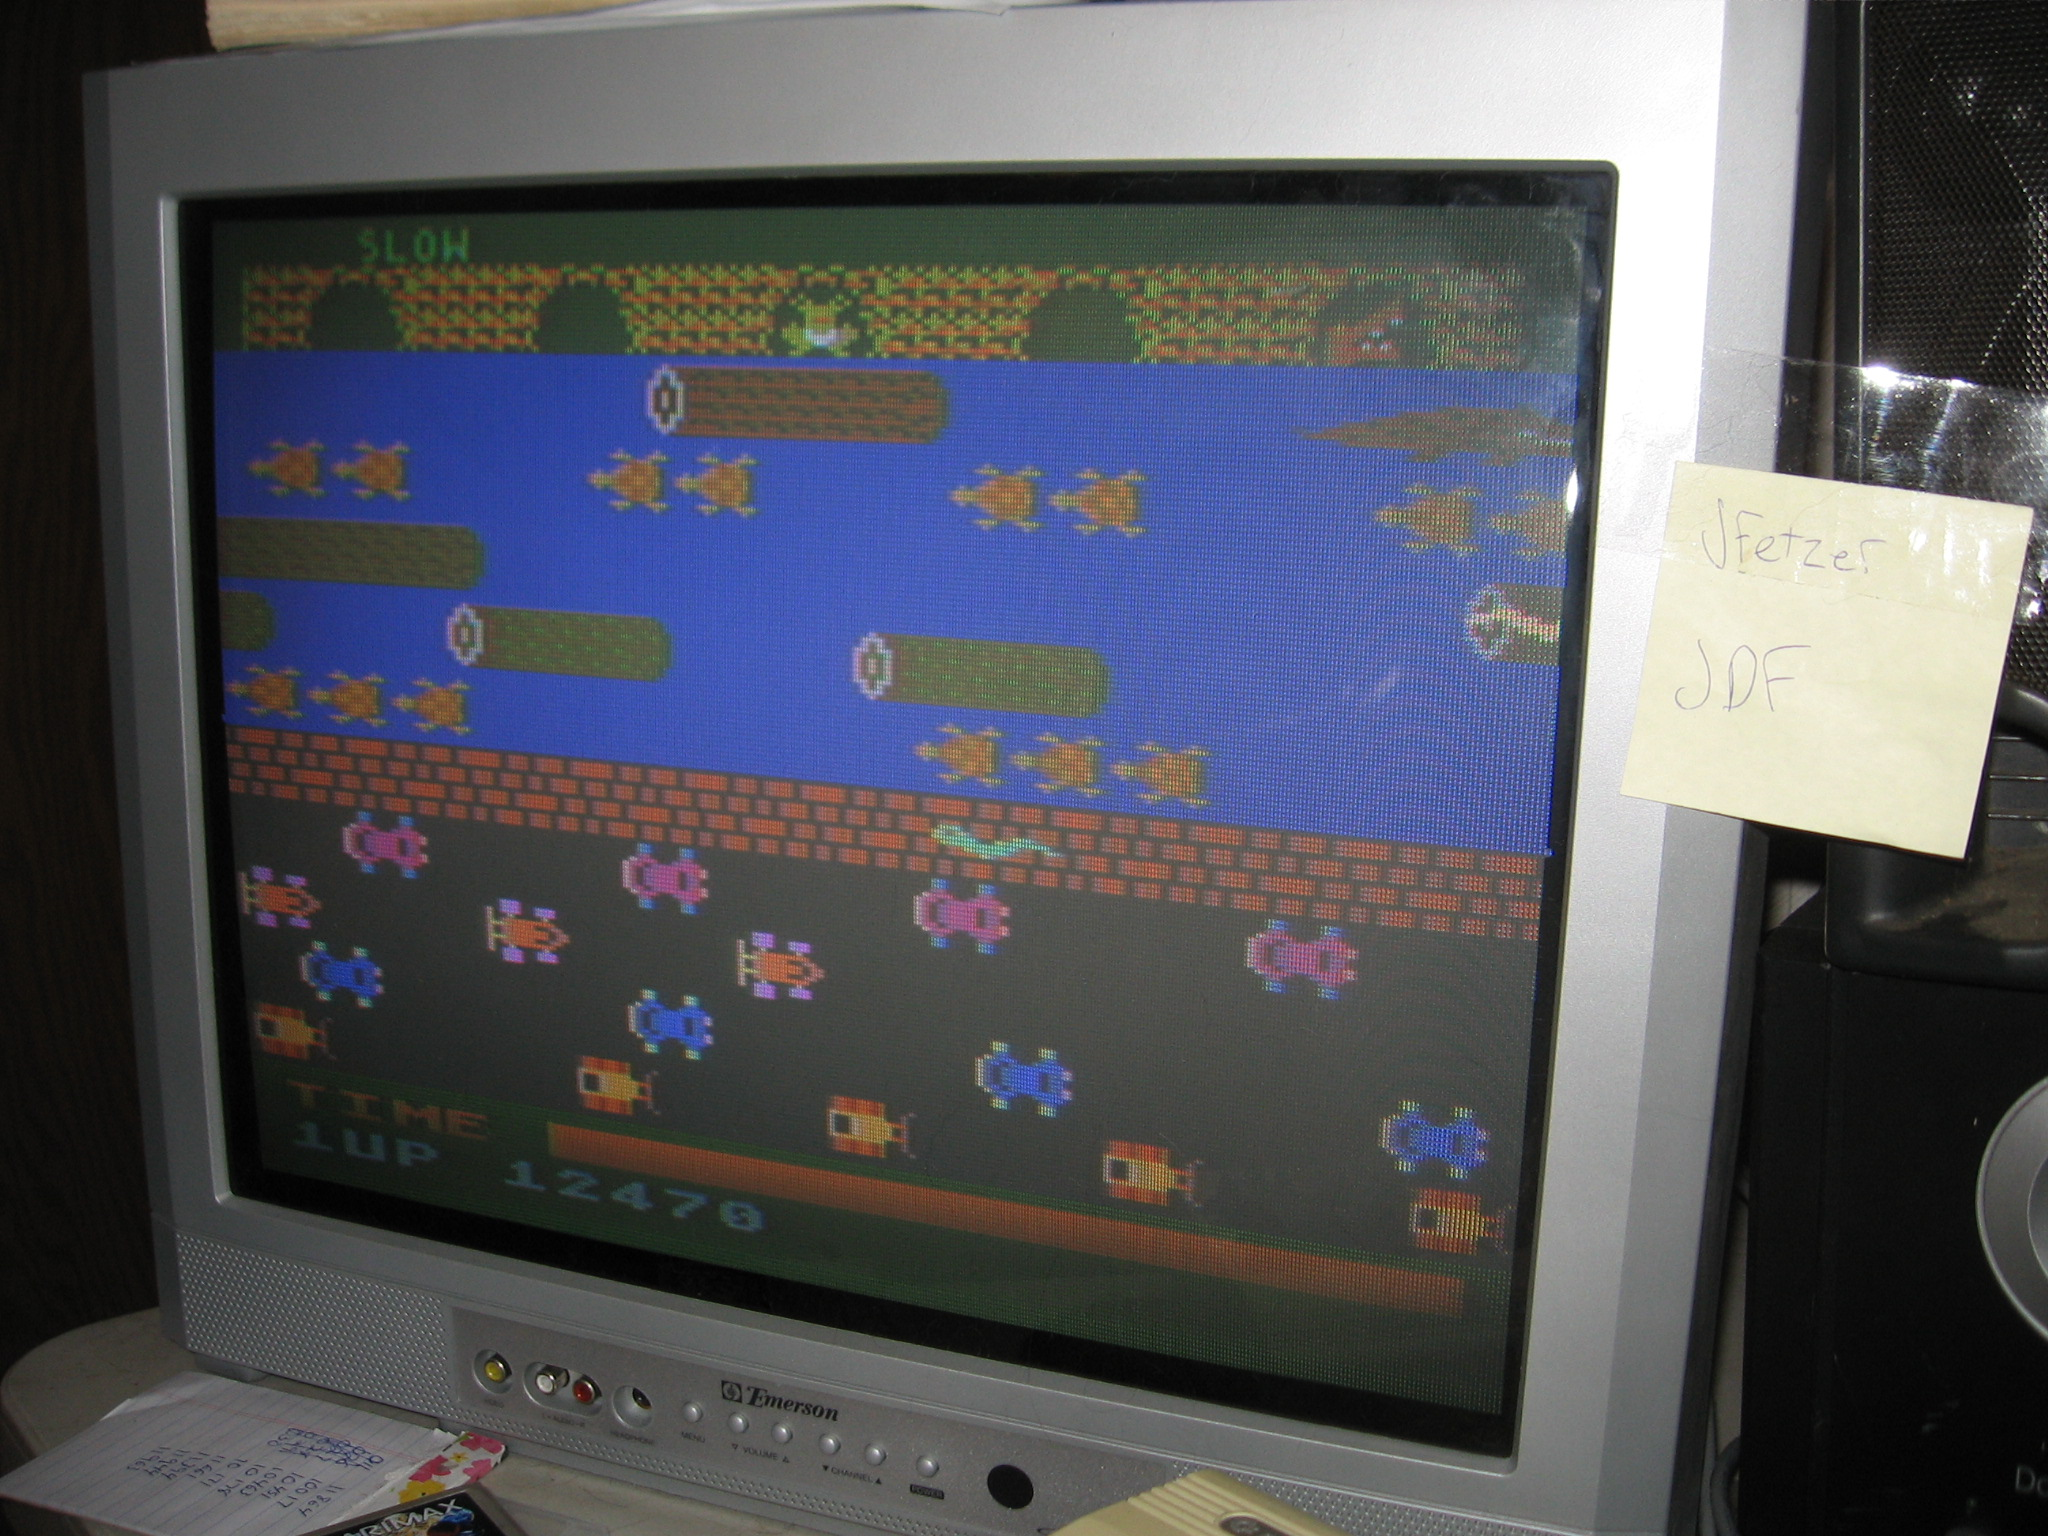 jfetzer: Frogger: Slow [Parker Brothers] (Atari 400/800/XL/XE) 12,470 points on 2014-06-19 19:34:27